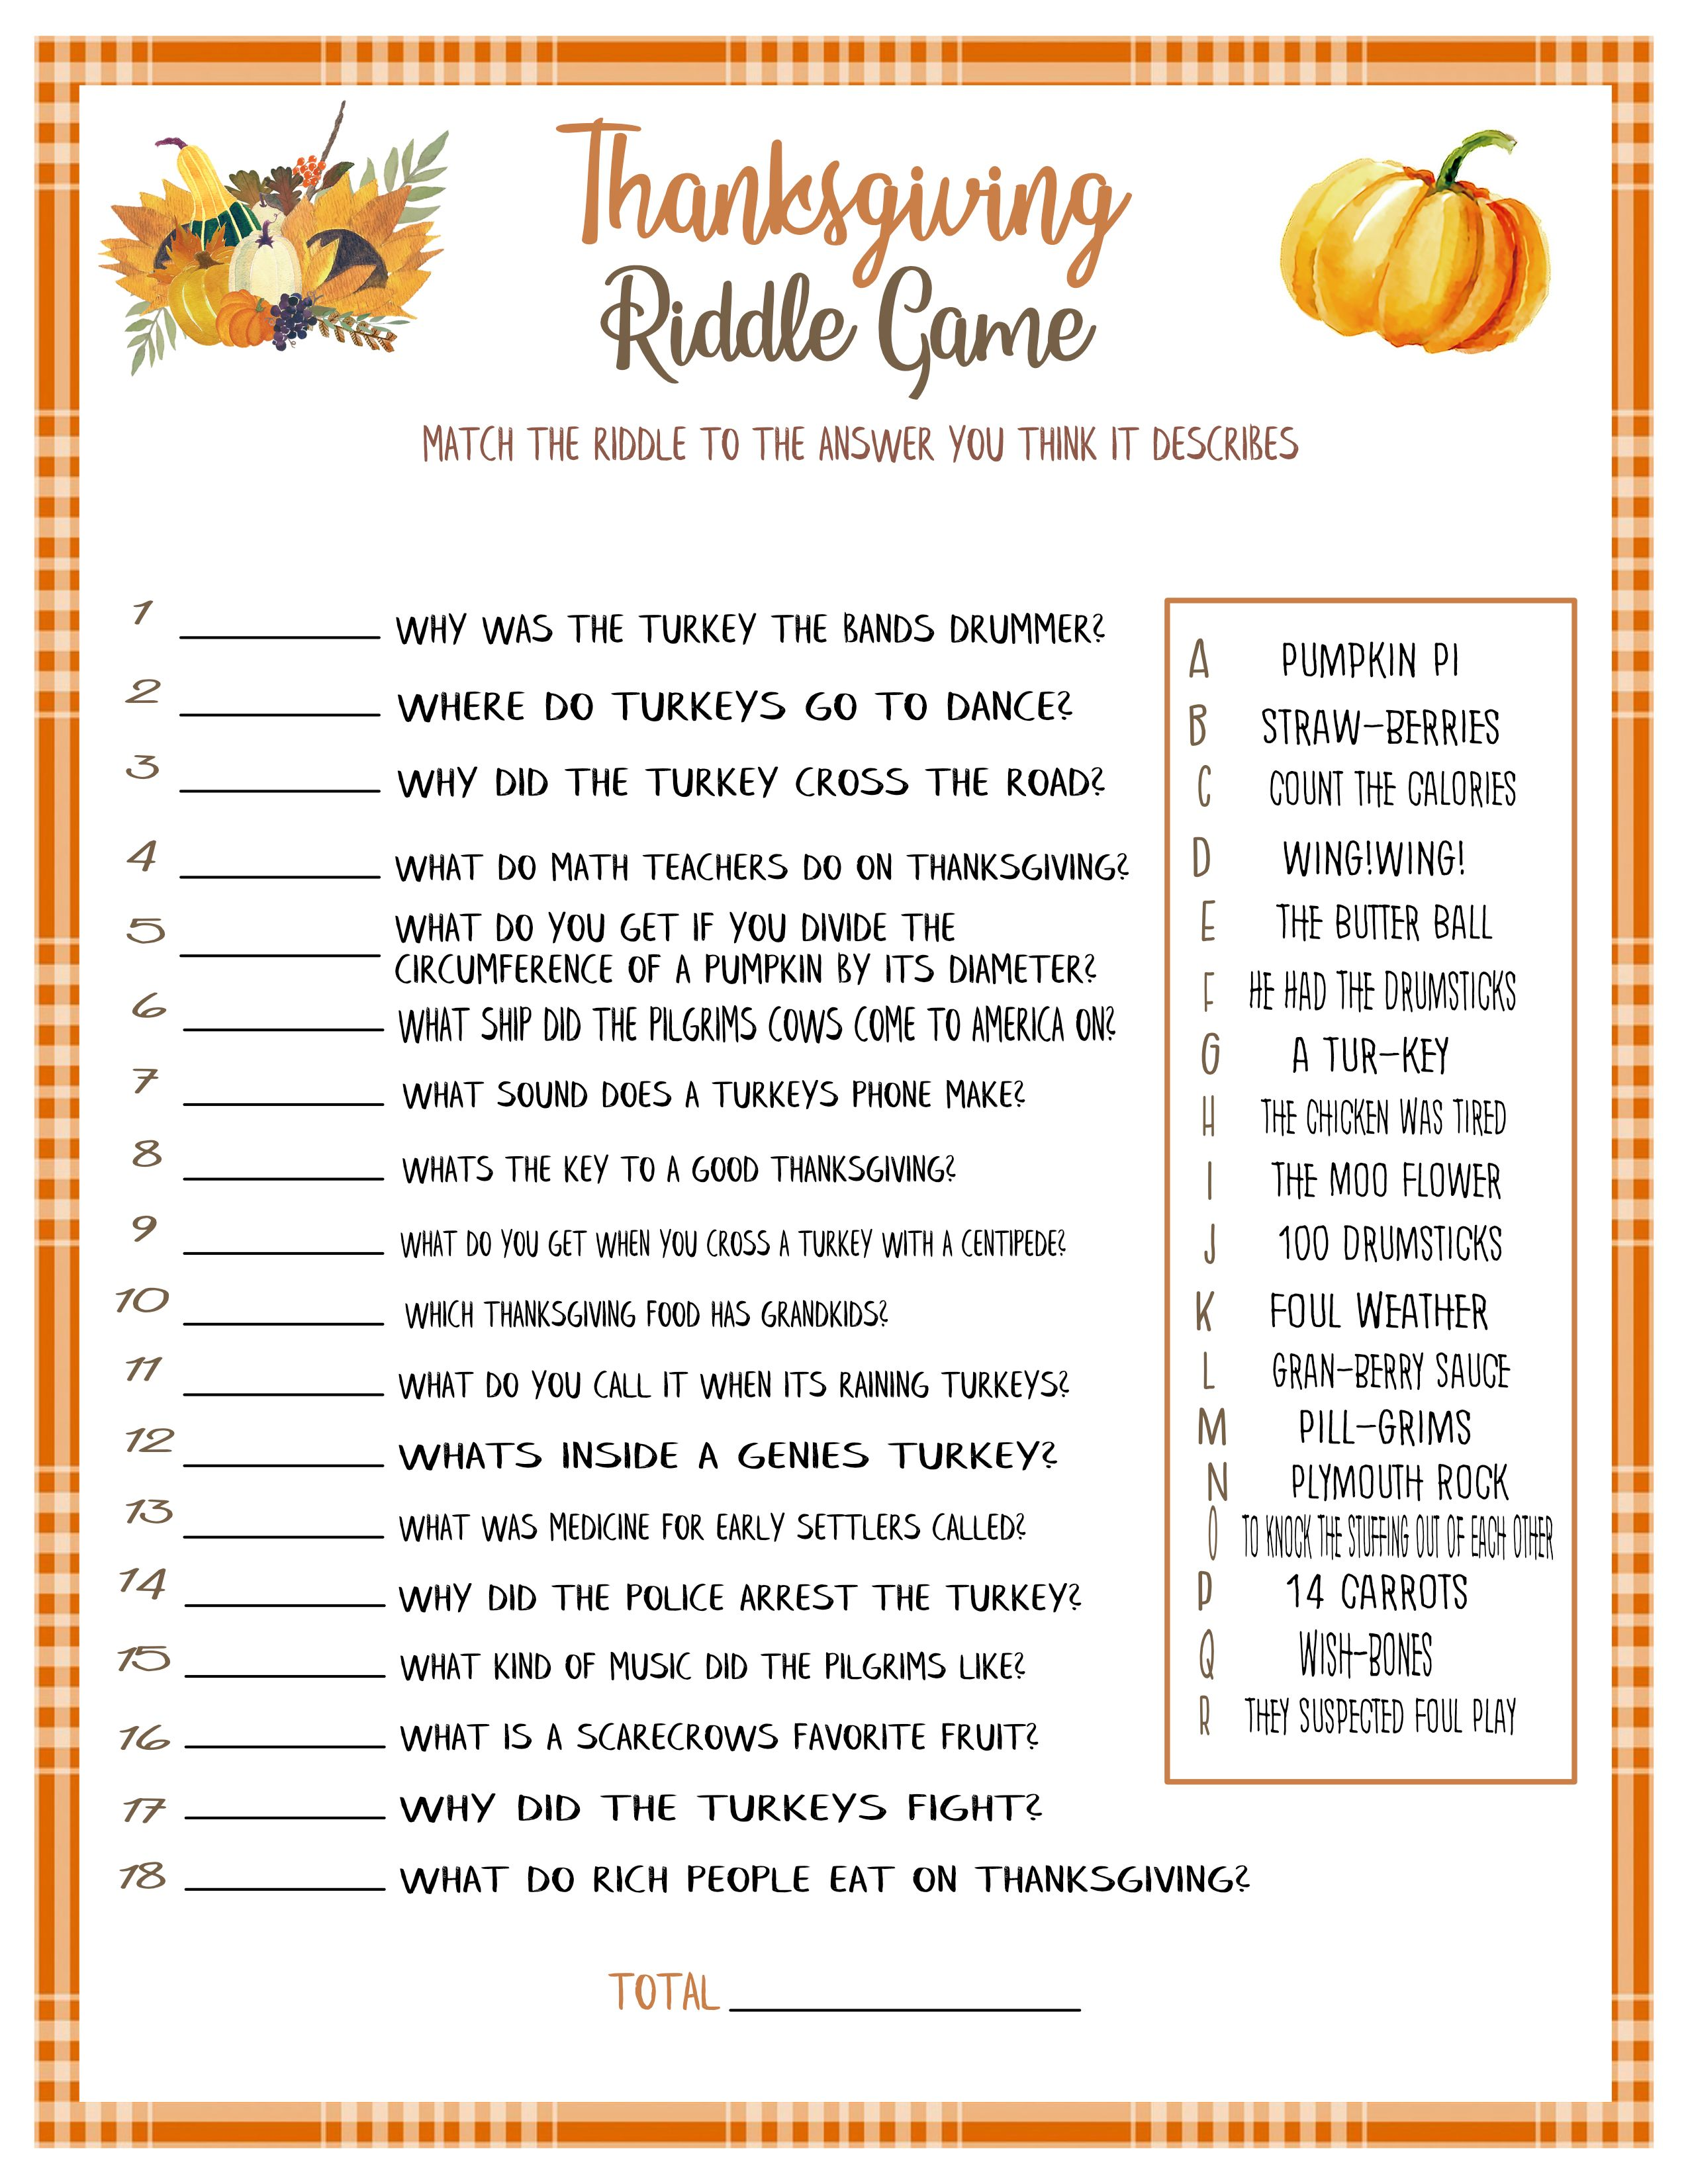 Thanksgiving Riddle Game Games For Thanksgiving Thanksgiving Activities Friendsgiving Ideas In 2020 Thanksgiving Games Riddle Games Thanksgiving Activities